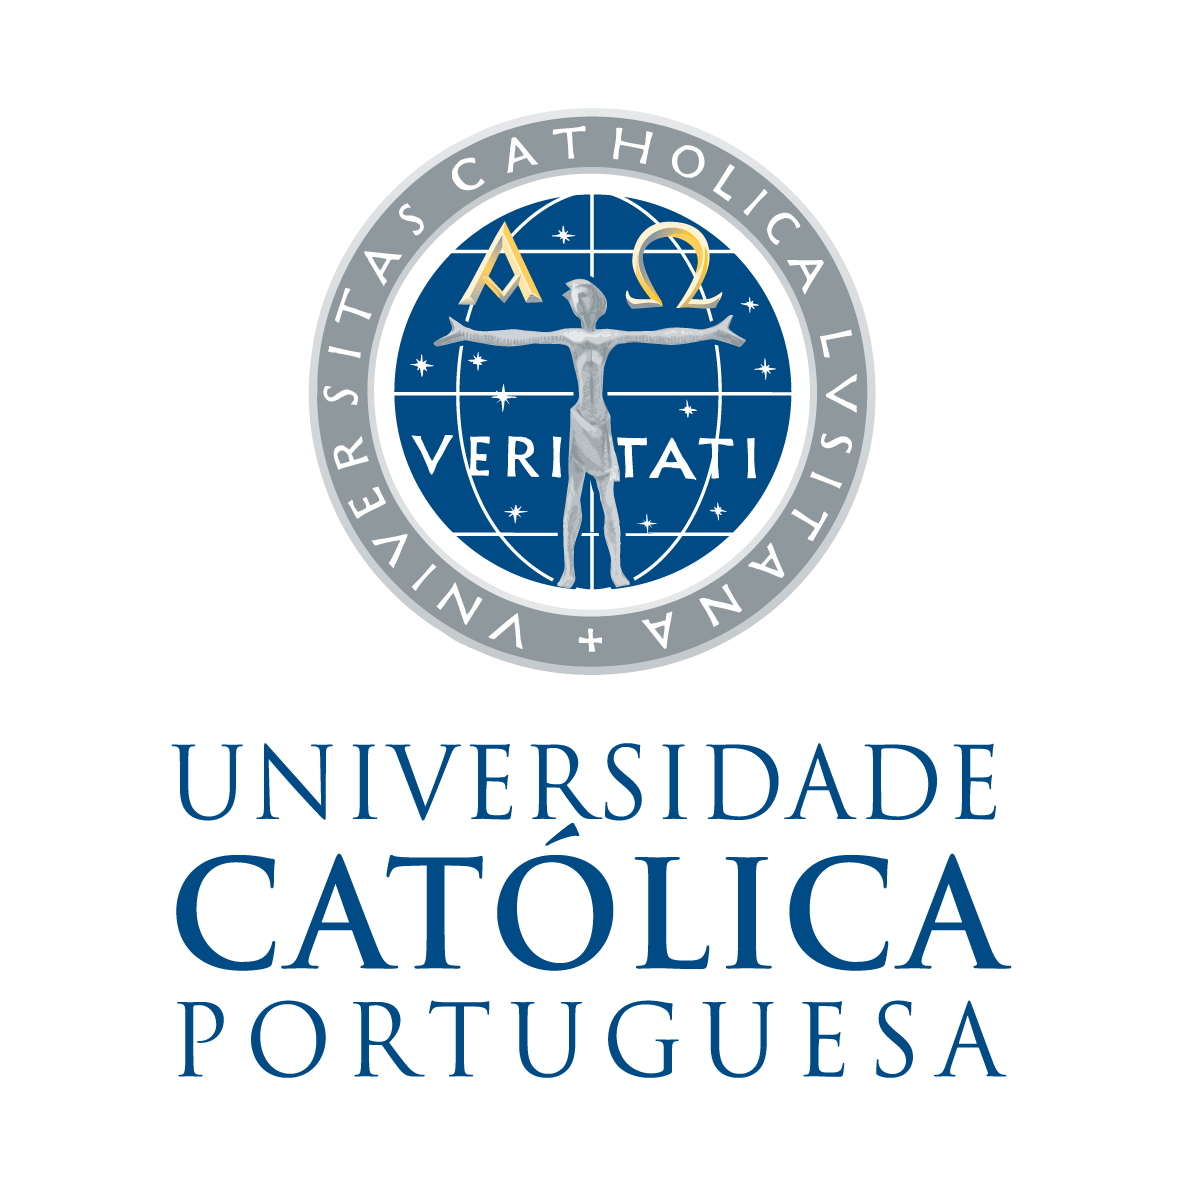 Università cattolica portoghese